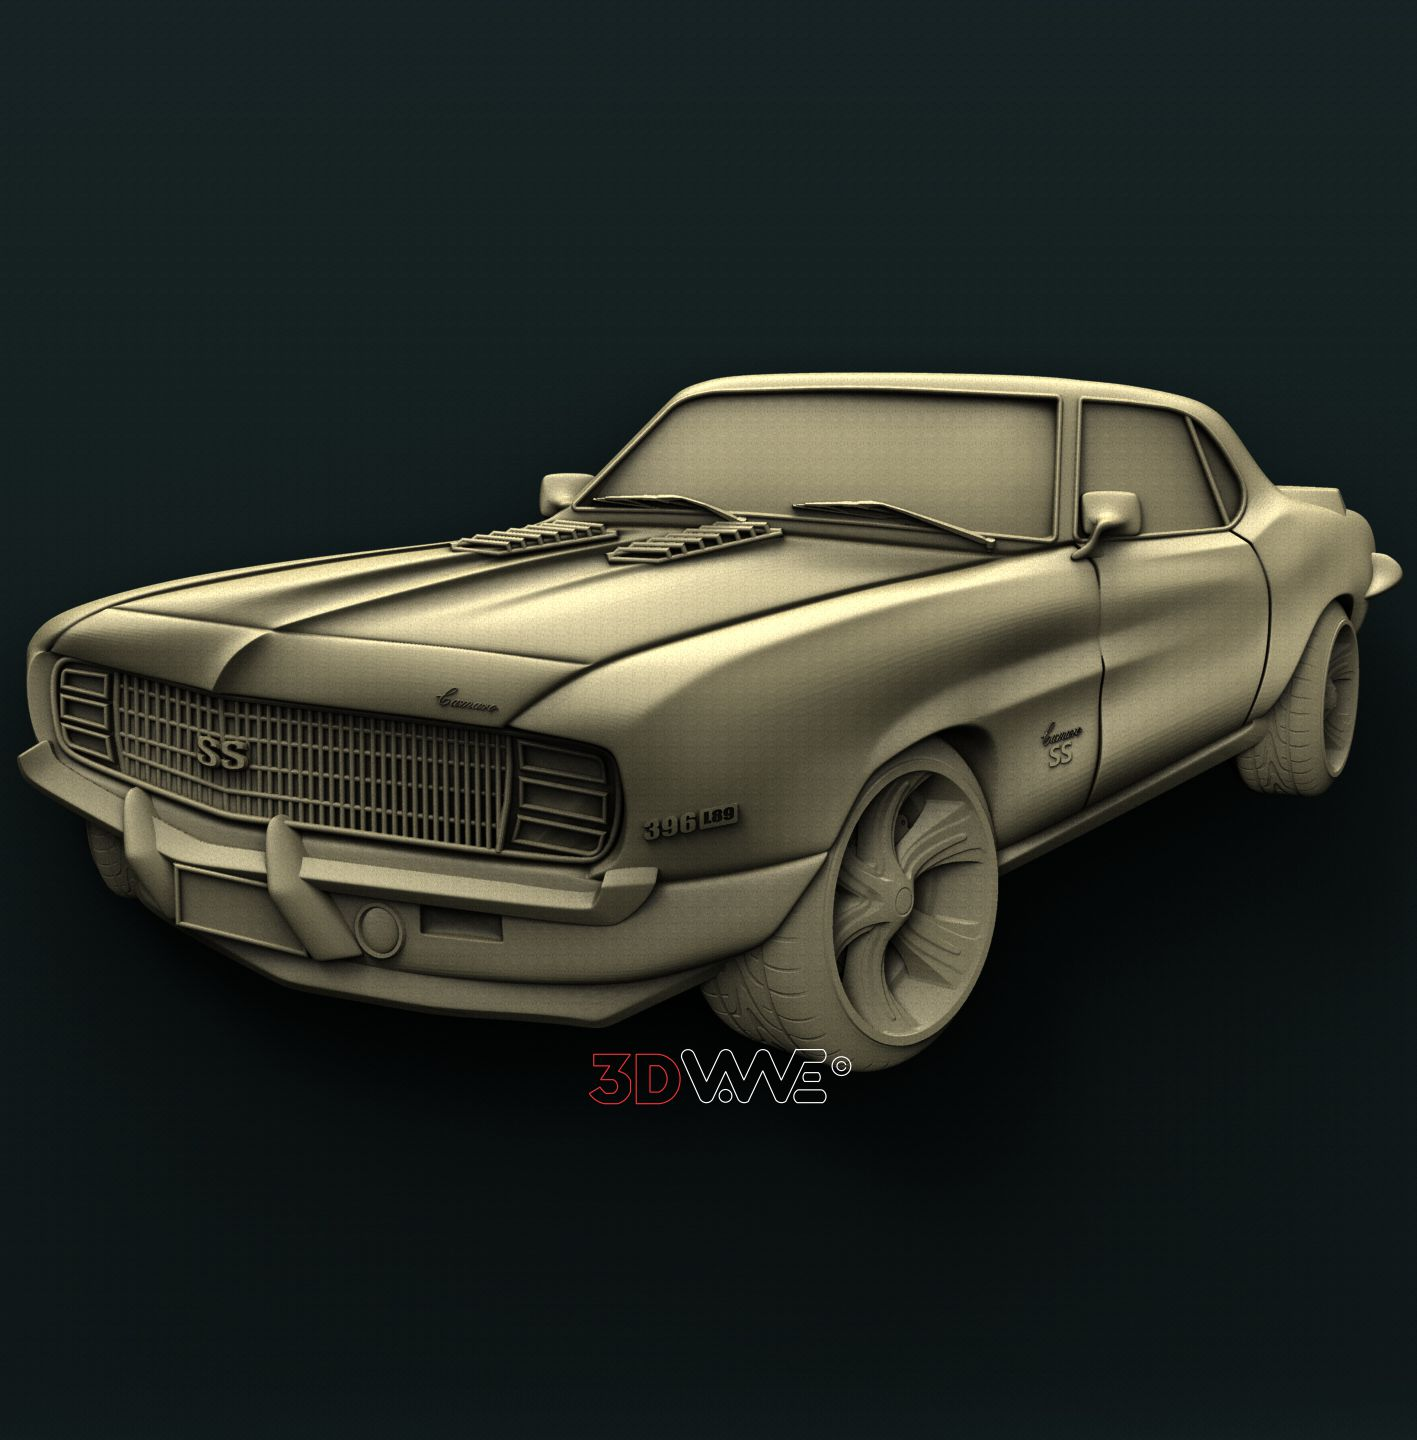 0673. Muscle Car